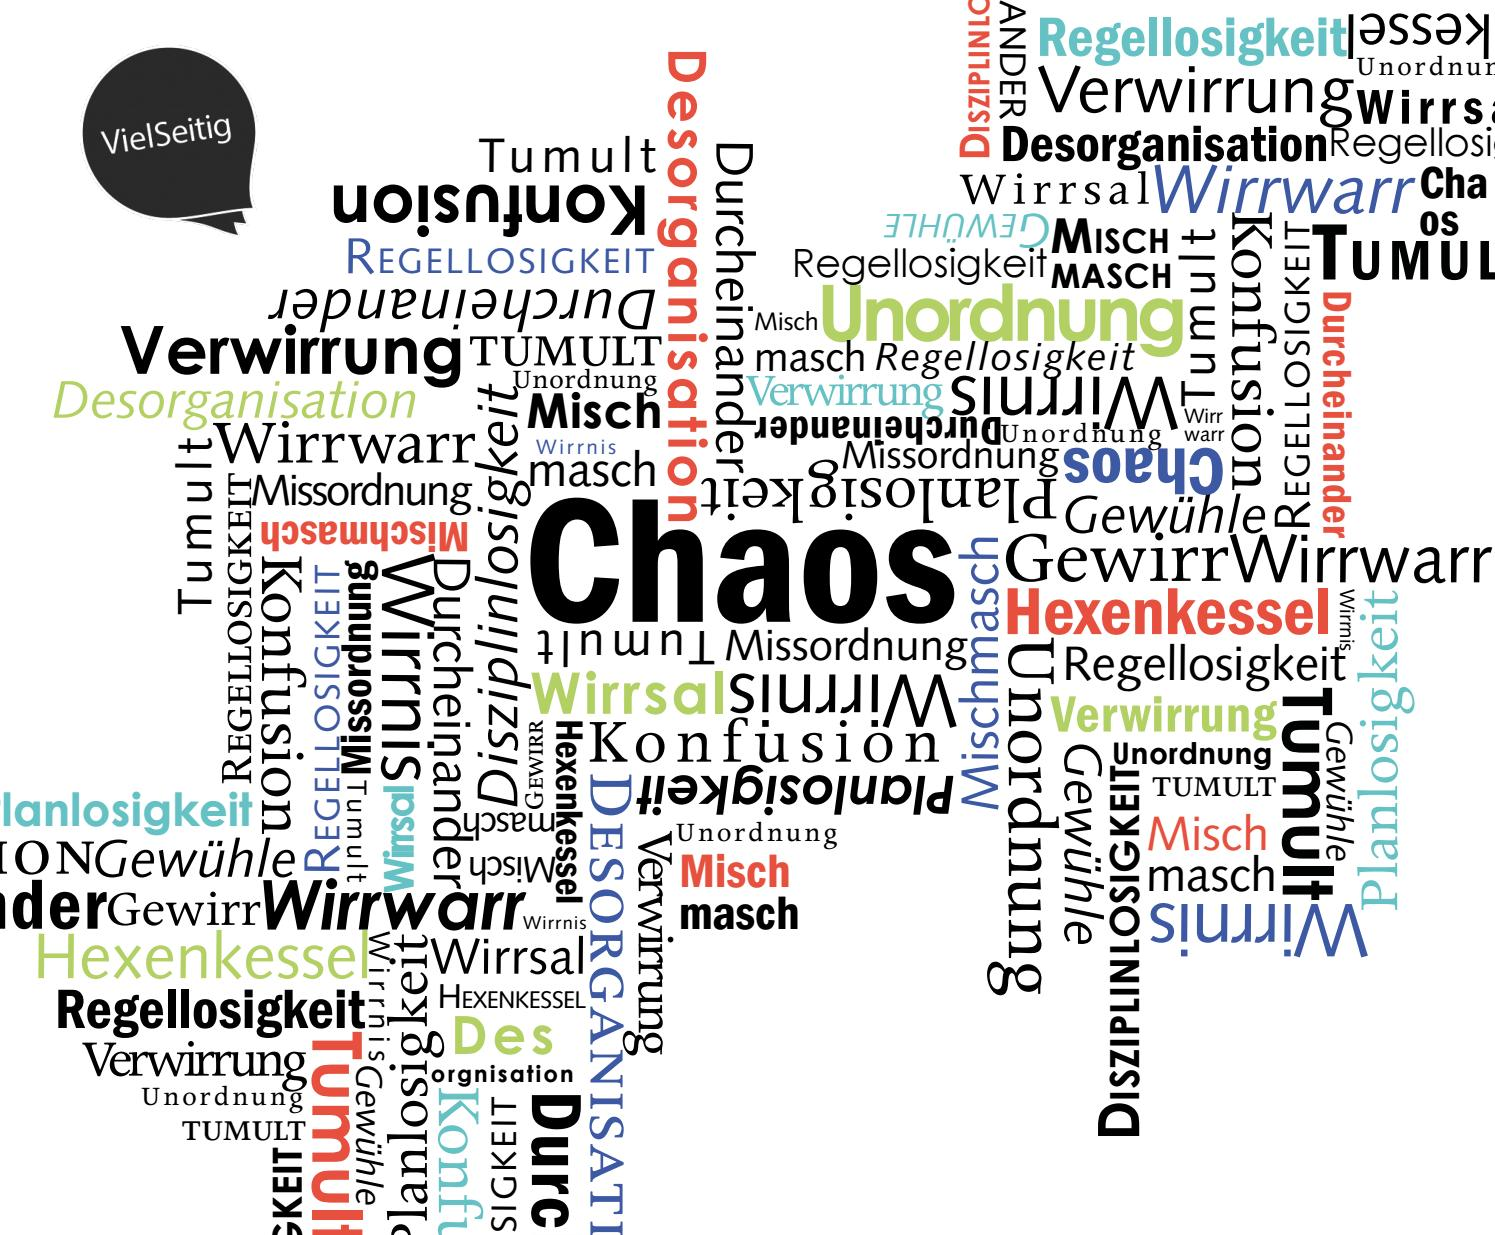 Chaos (SS 16) by VielSeitig - issuu